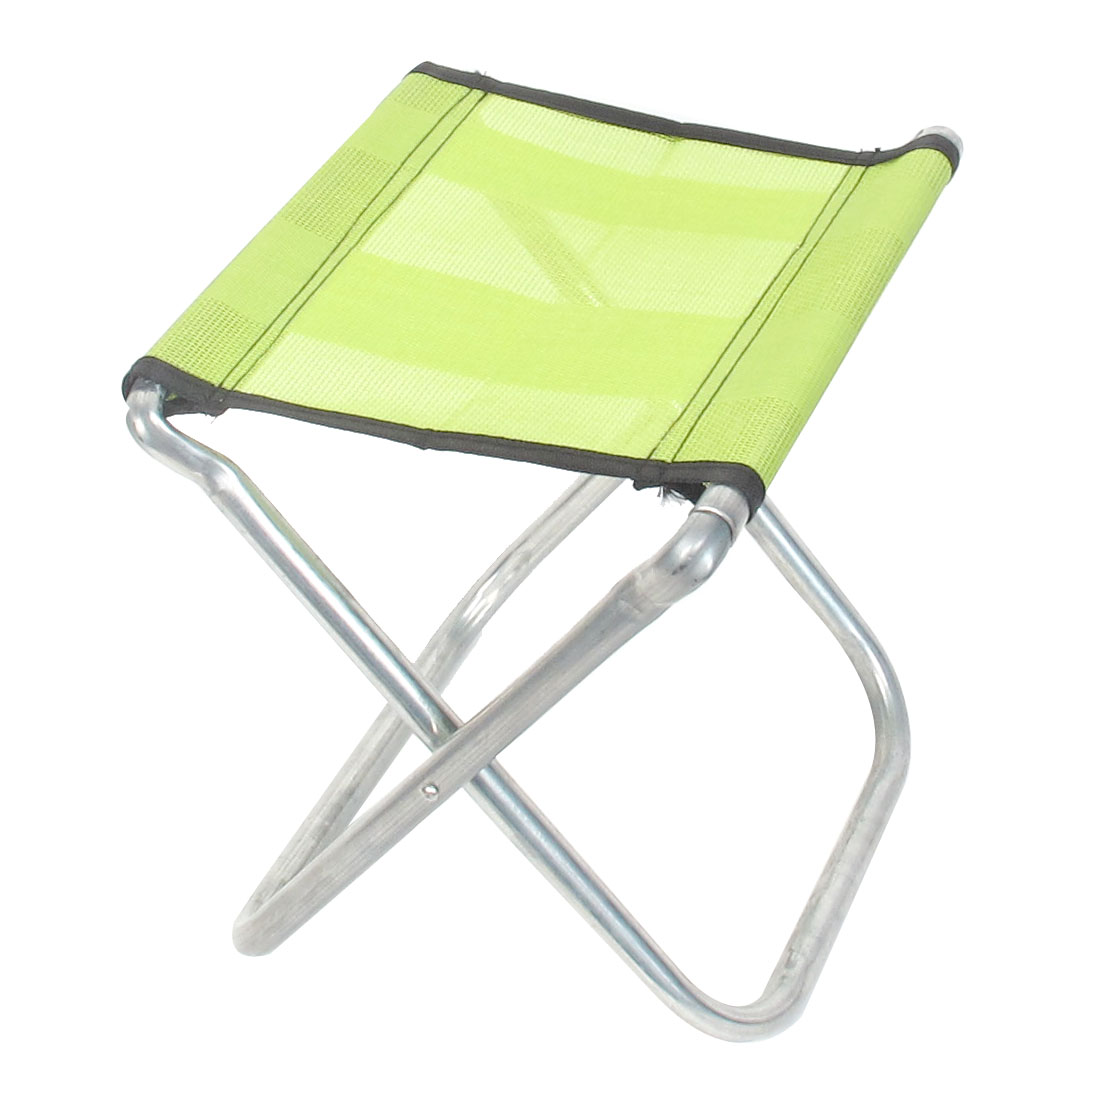 Camping Fishing Travel Metal Frame Nylon Seat Portable Folding Chair Stool Light Green